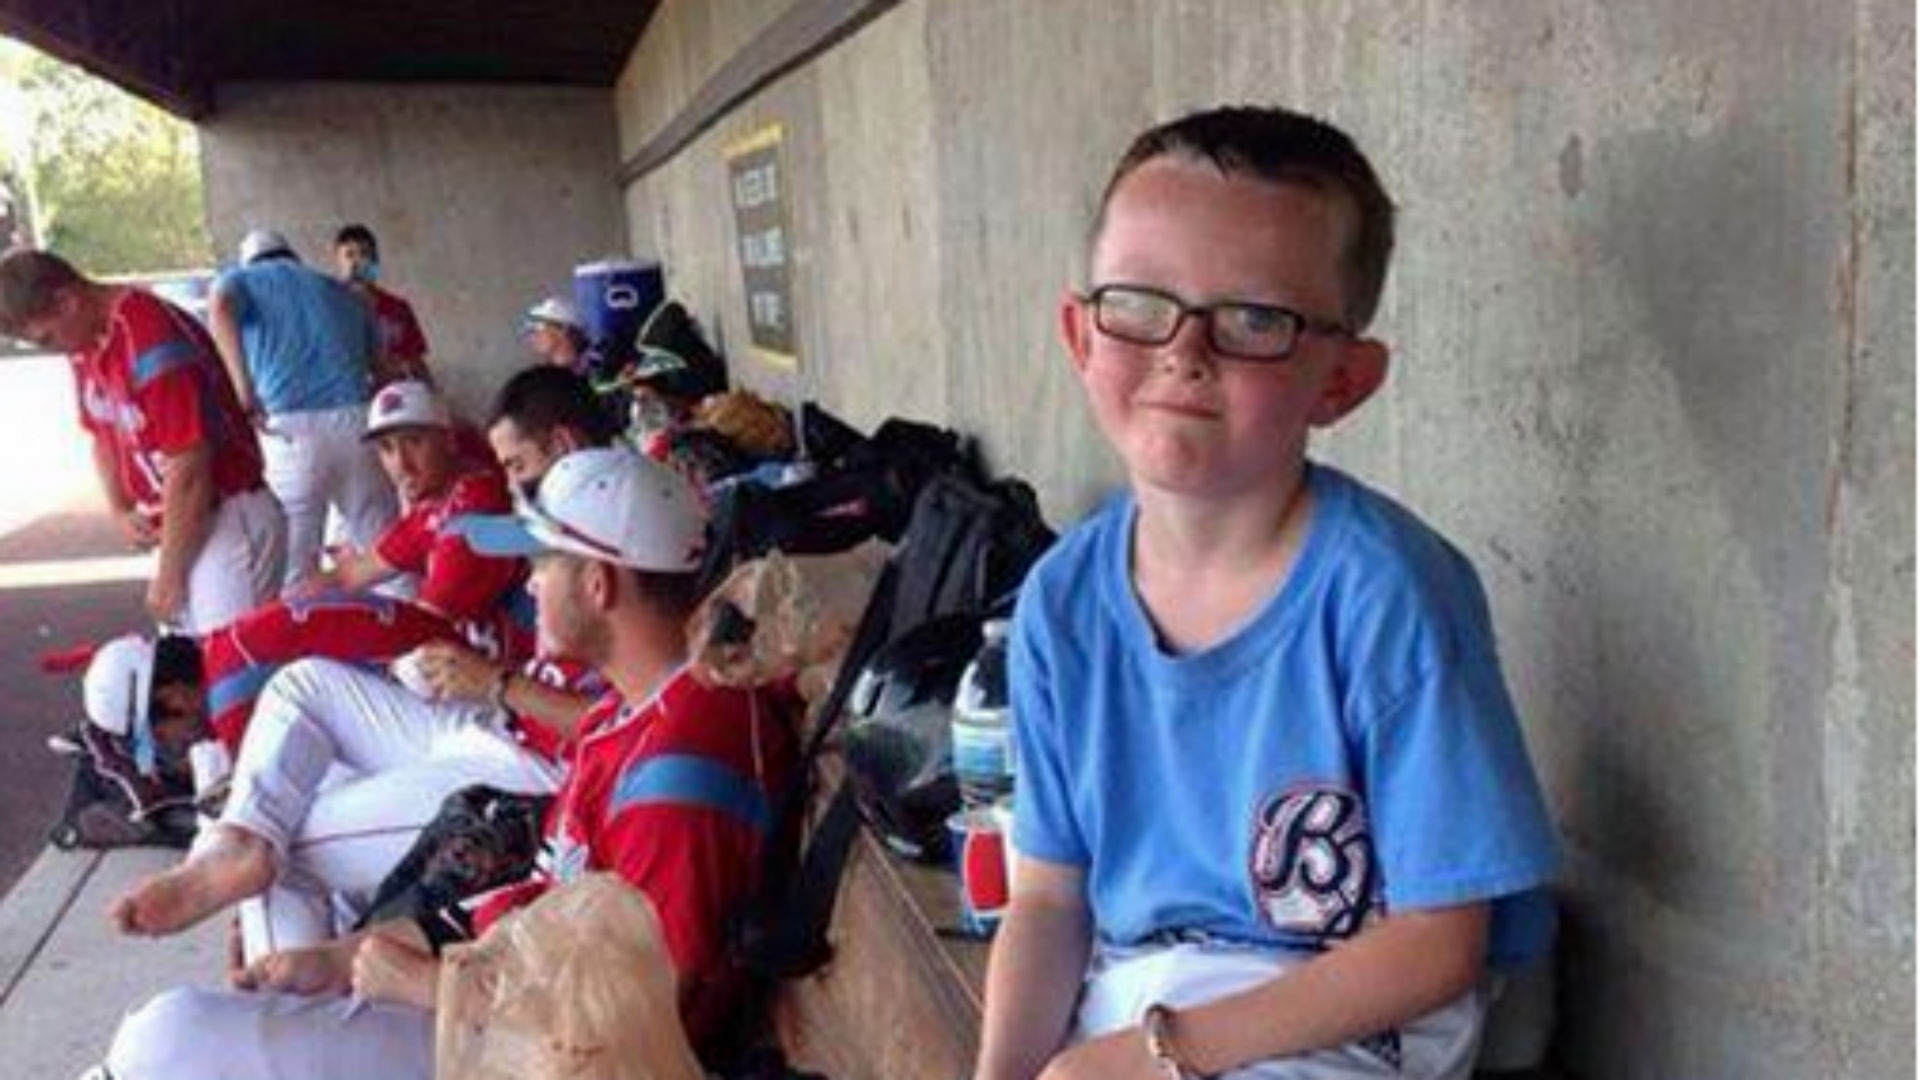 Batboy, 9, in critical condition after being hit by warmup swing